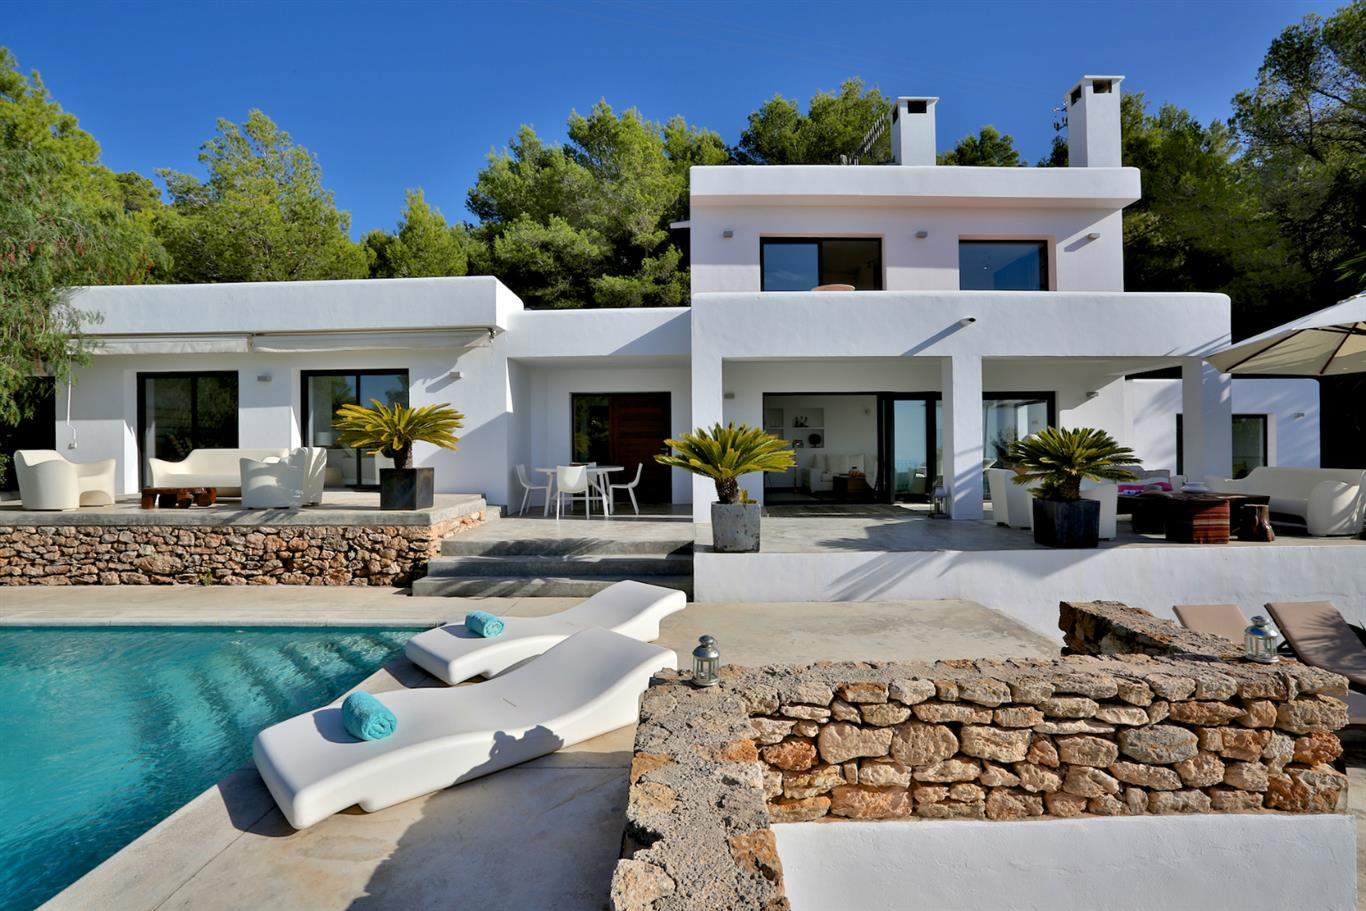 Renting a Villa in Ibiza: 5 Must-Try Villa Services You Will Love